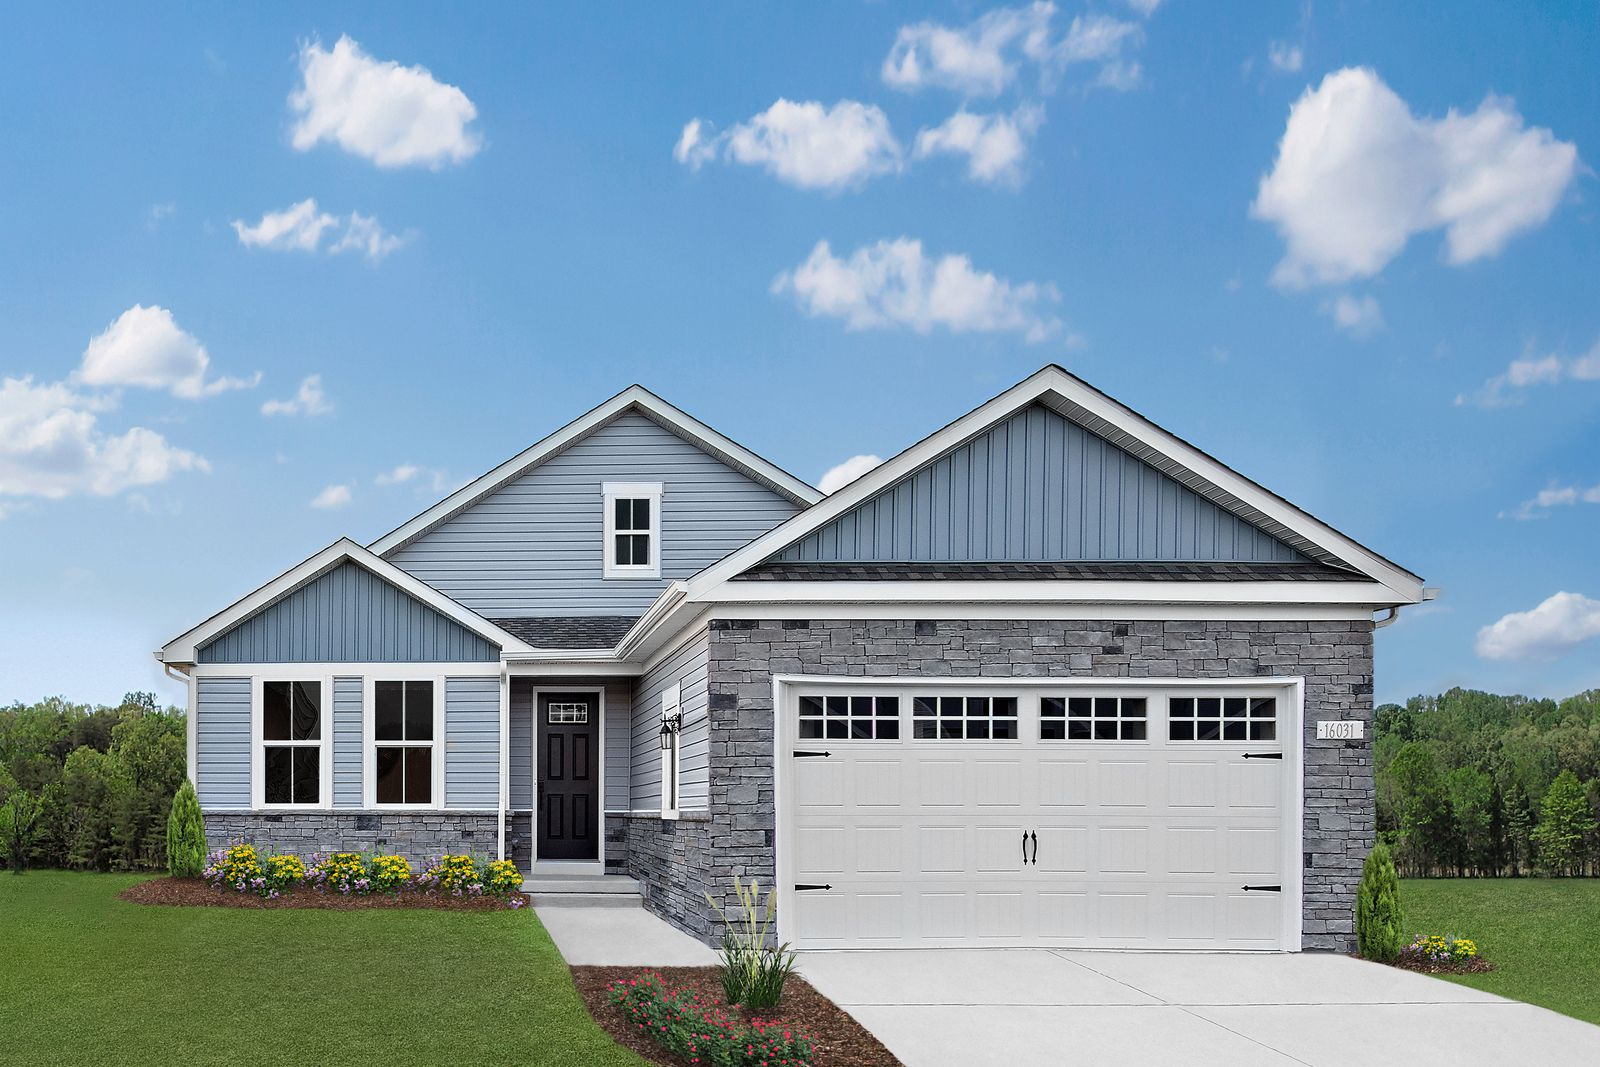 Welcome to Arbordale - VERY LAST Home Site! All closing costs paid – up to $12,000 through 11/29.